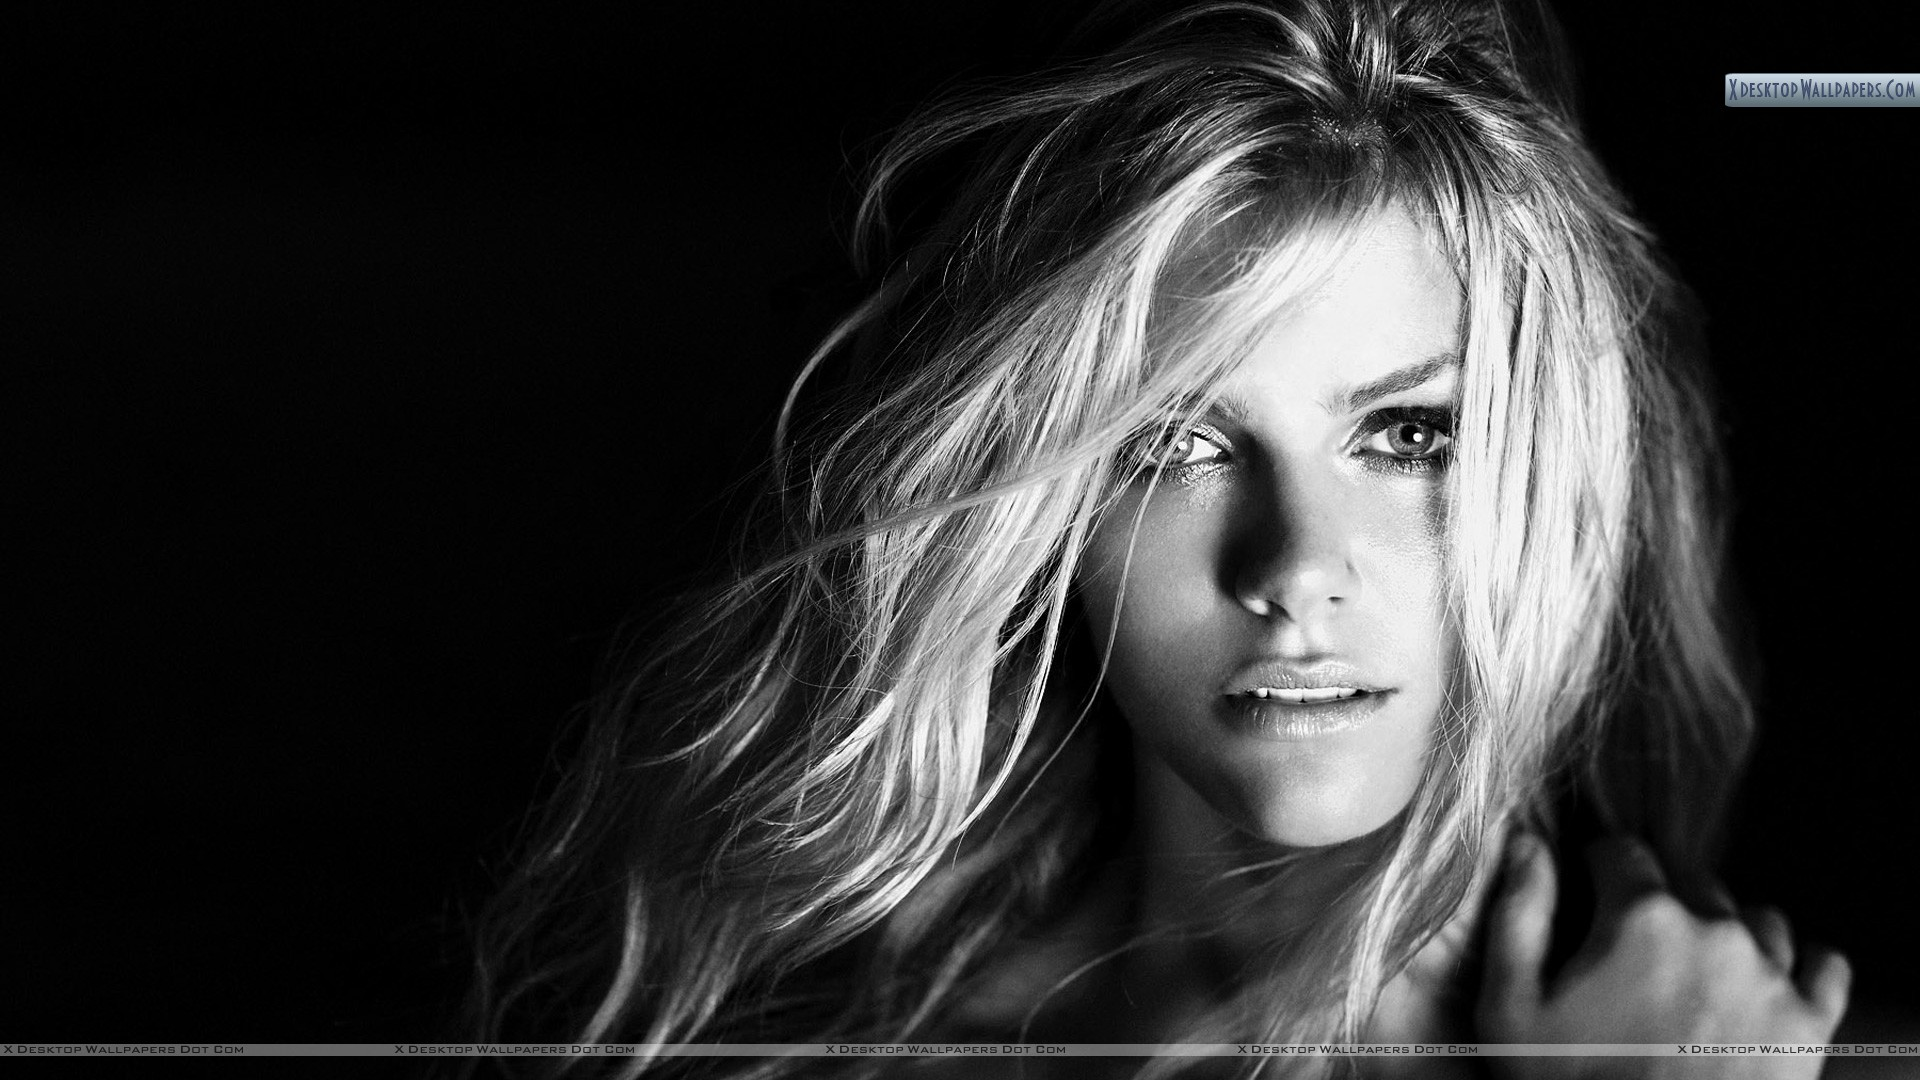 You are viewing wallpaper titled brooklyn decker black white